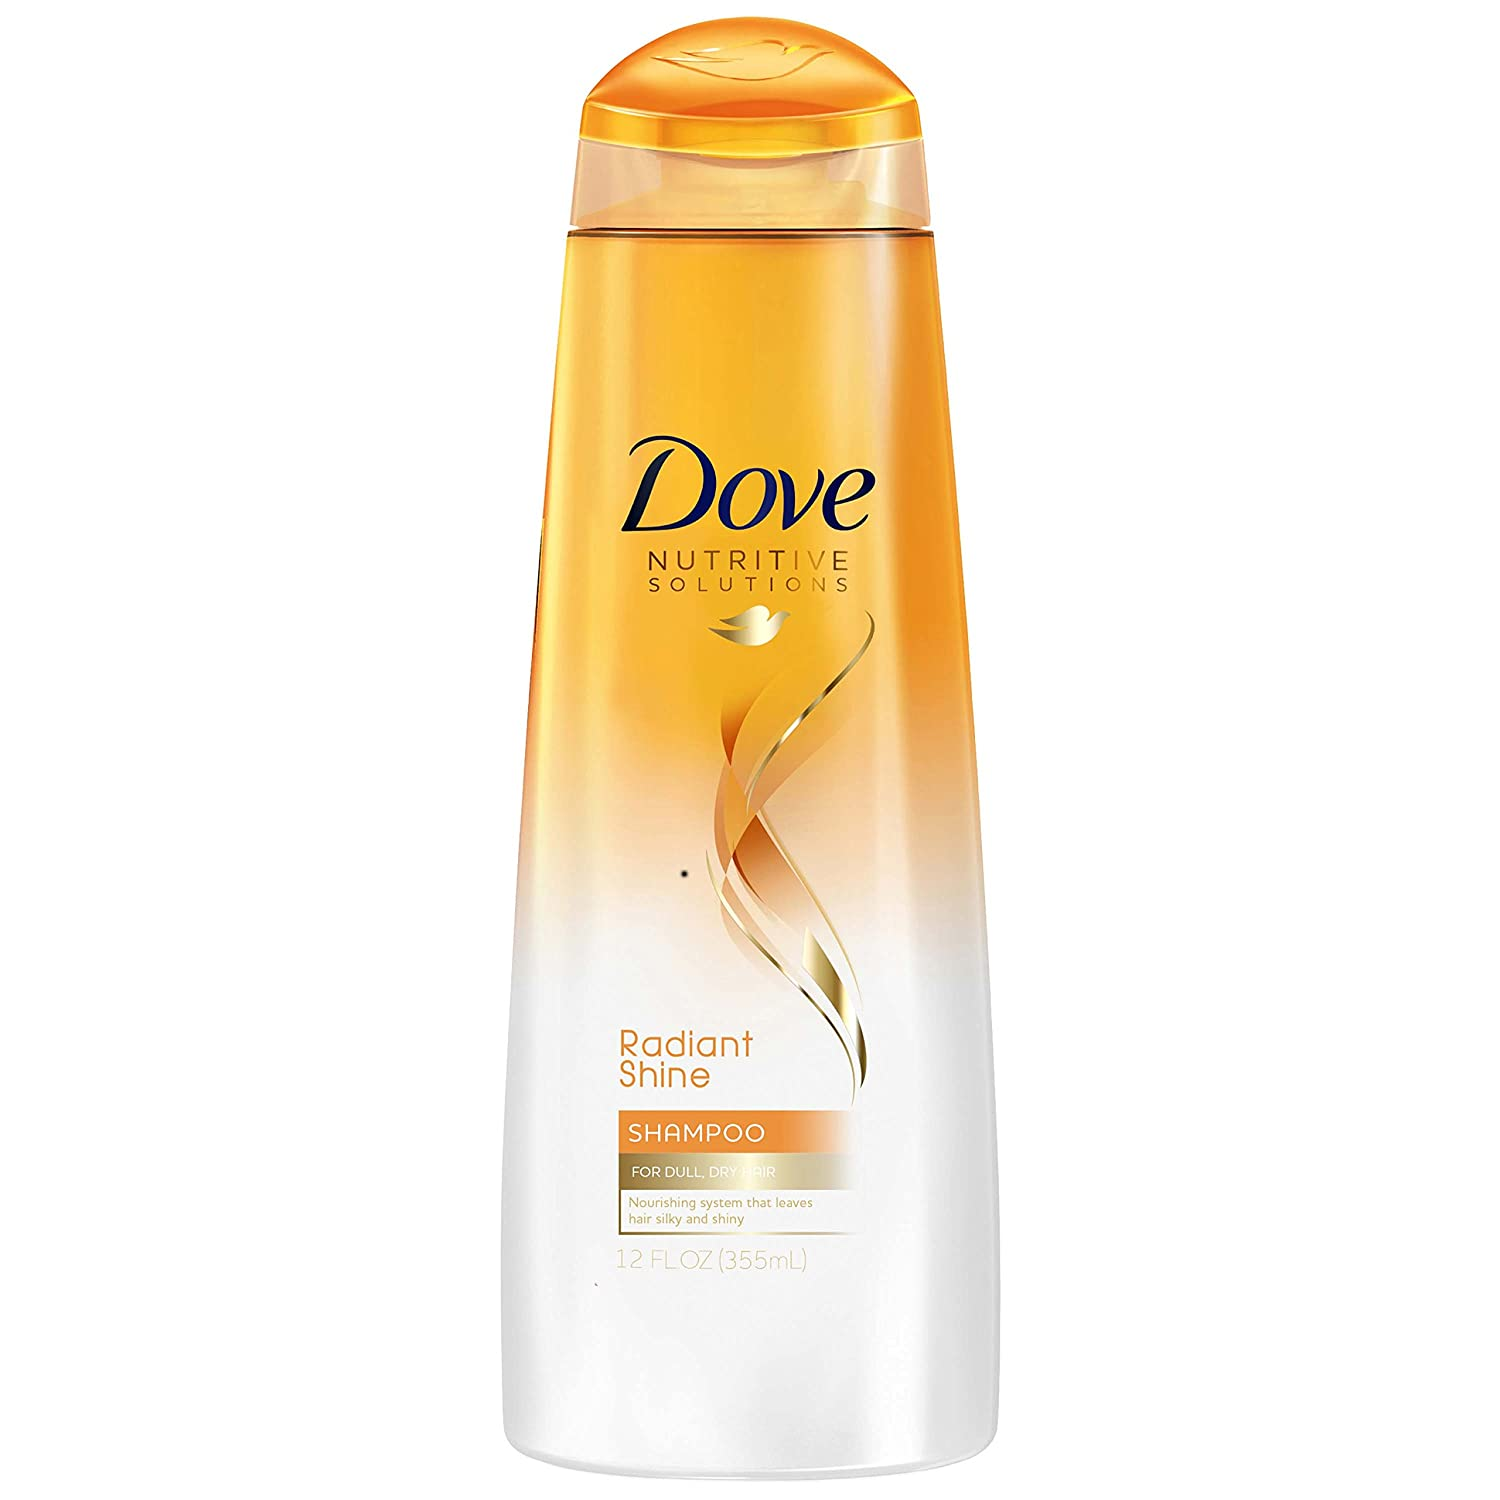 Dove Advanced Hair Series Shampoo, Radiant Shine 12 oz